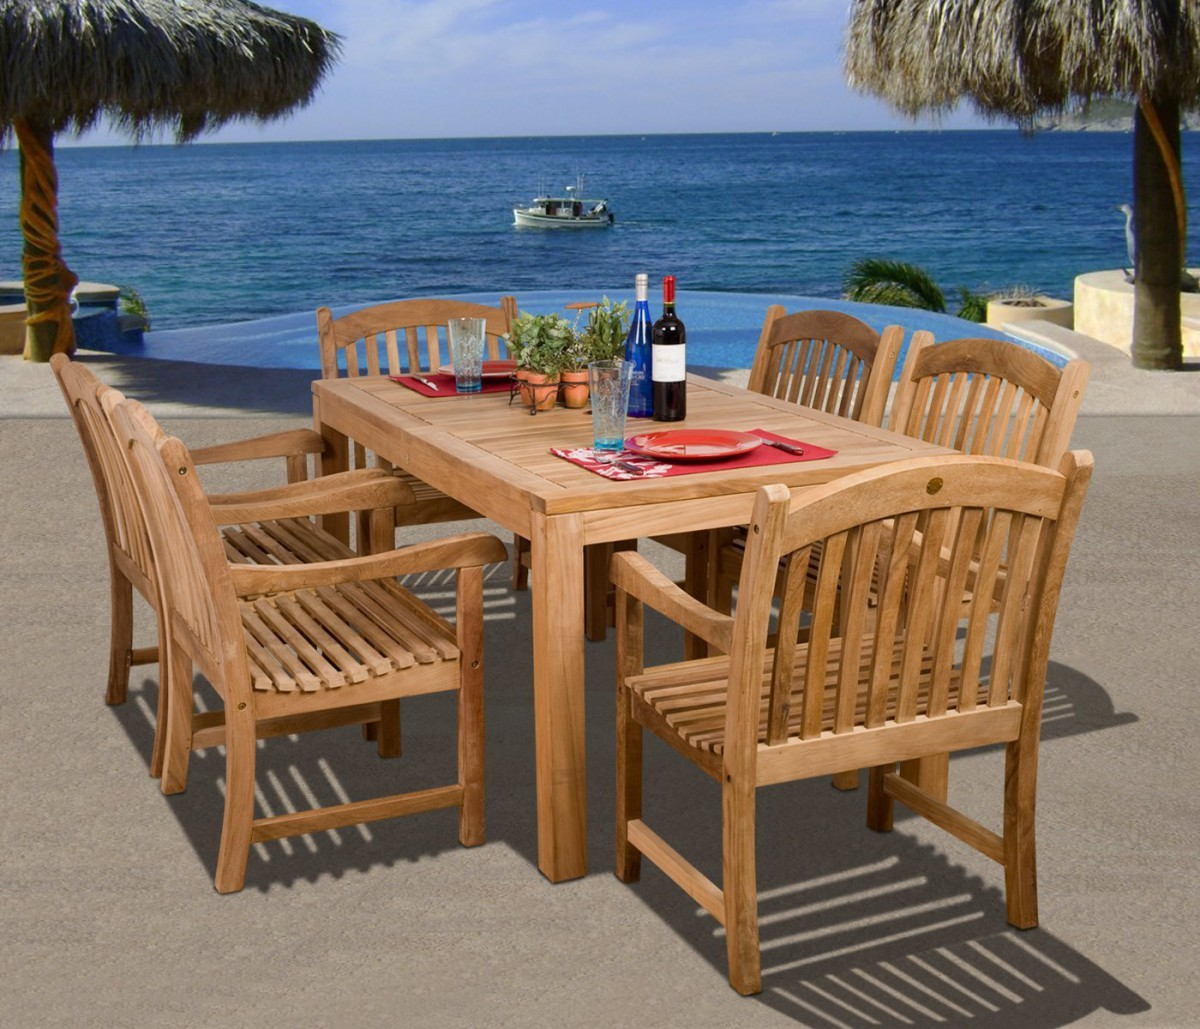 Amazonia Teak Oslo 7 Piece Rectangular Teak Outdoor Dining Set